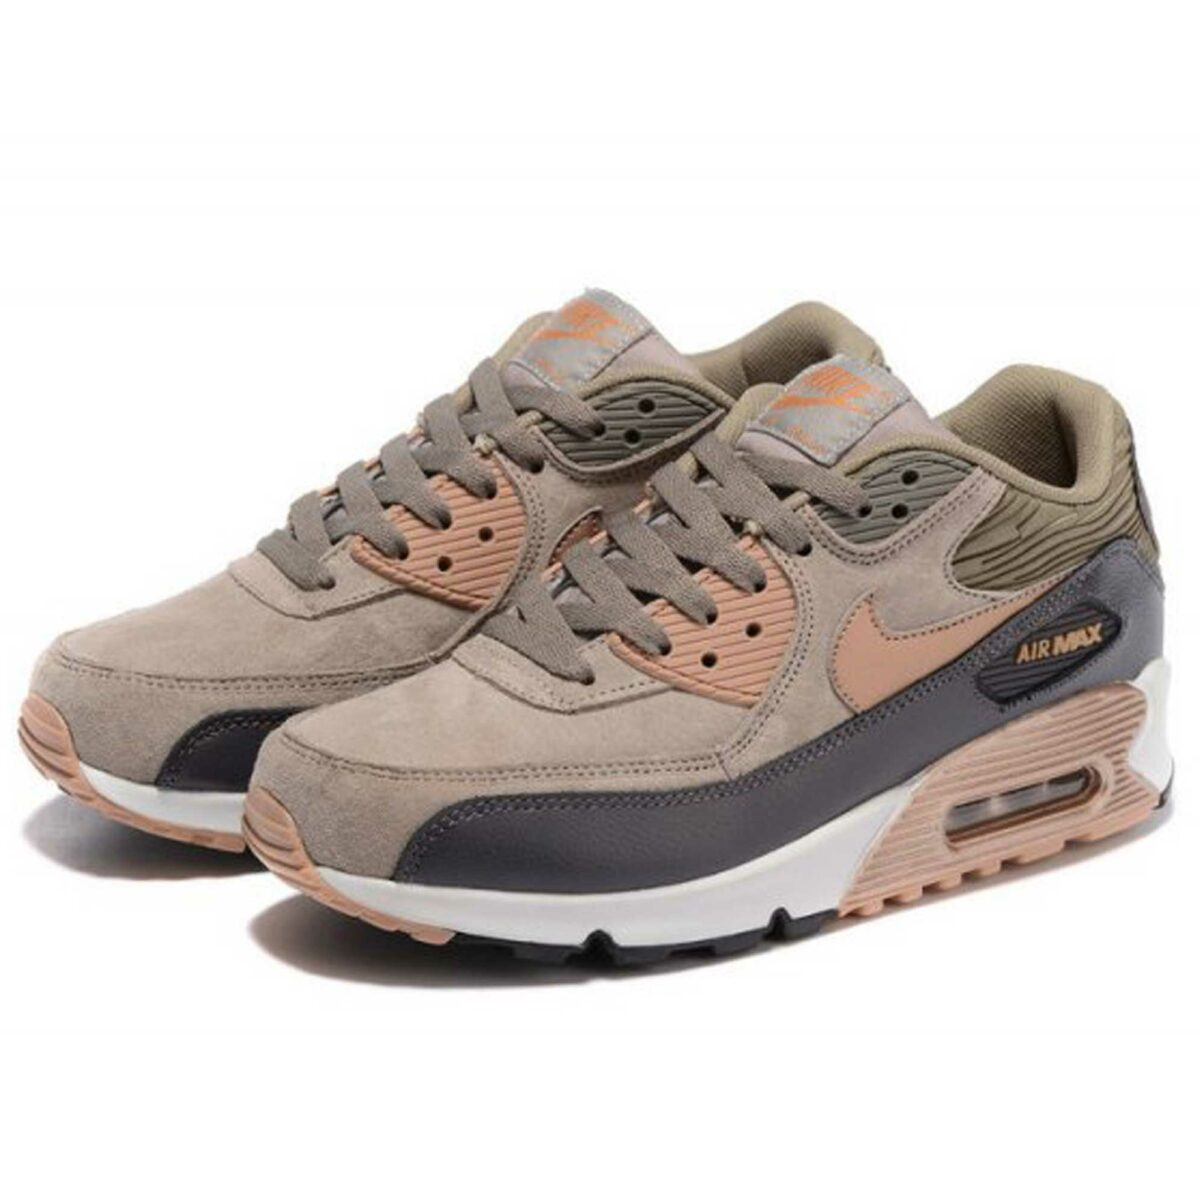 nike air max 90 leather bronze gold metallic 768887_201 купить